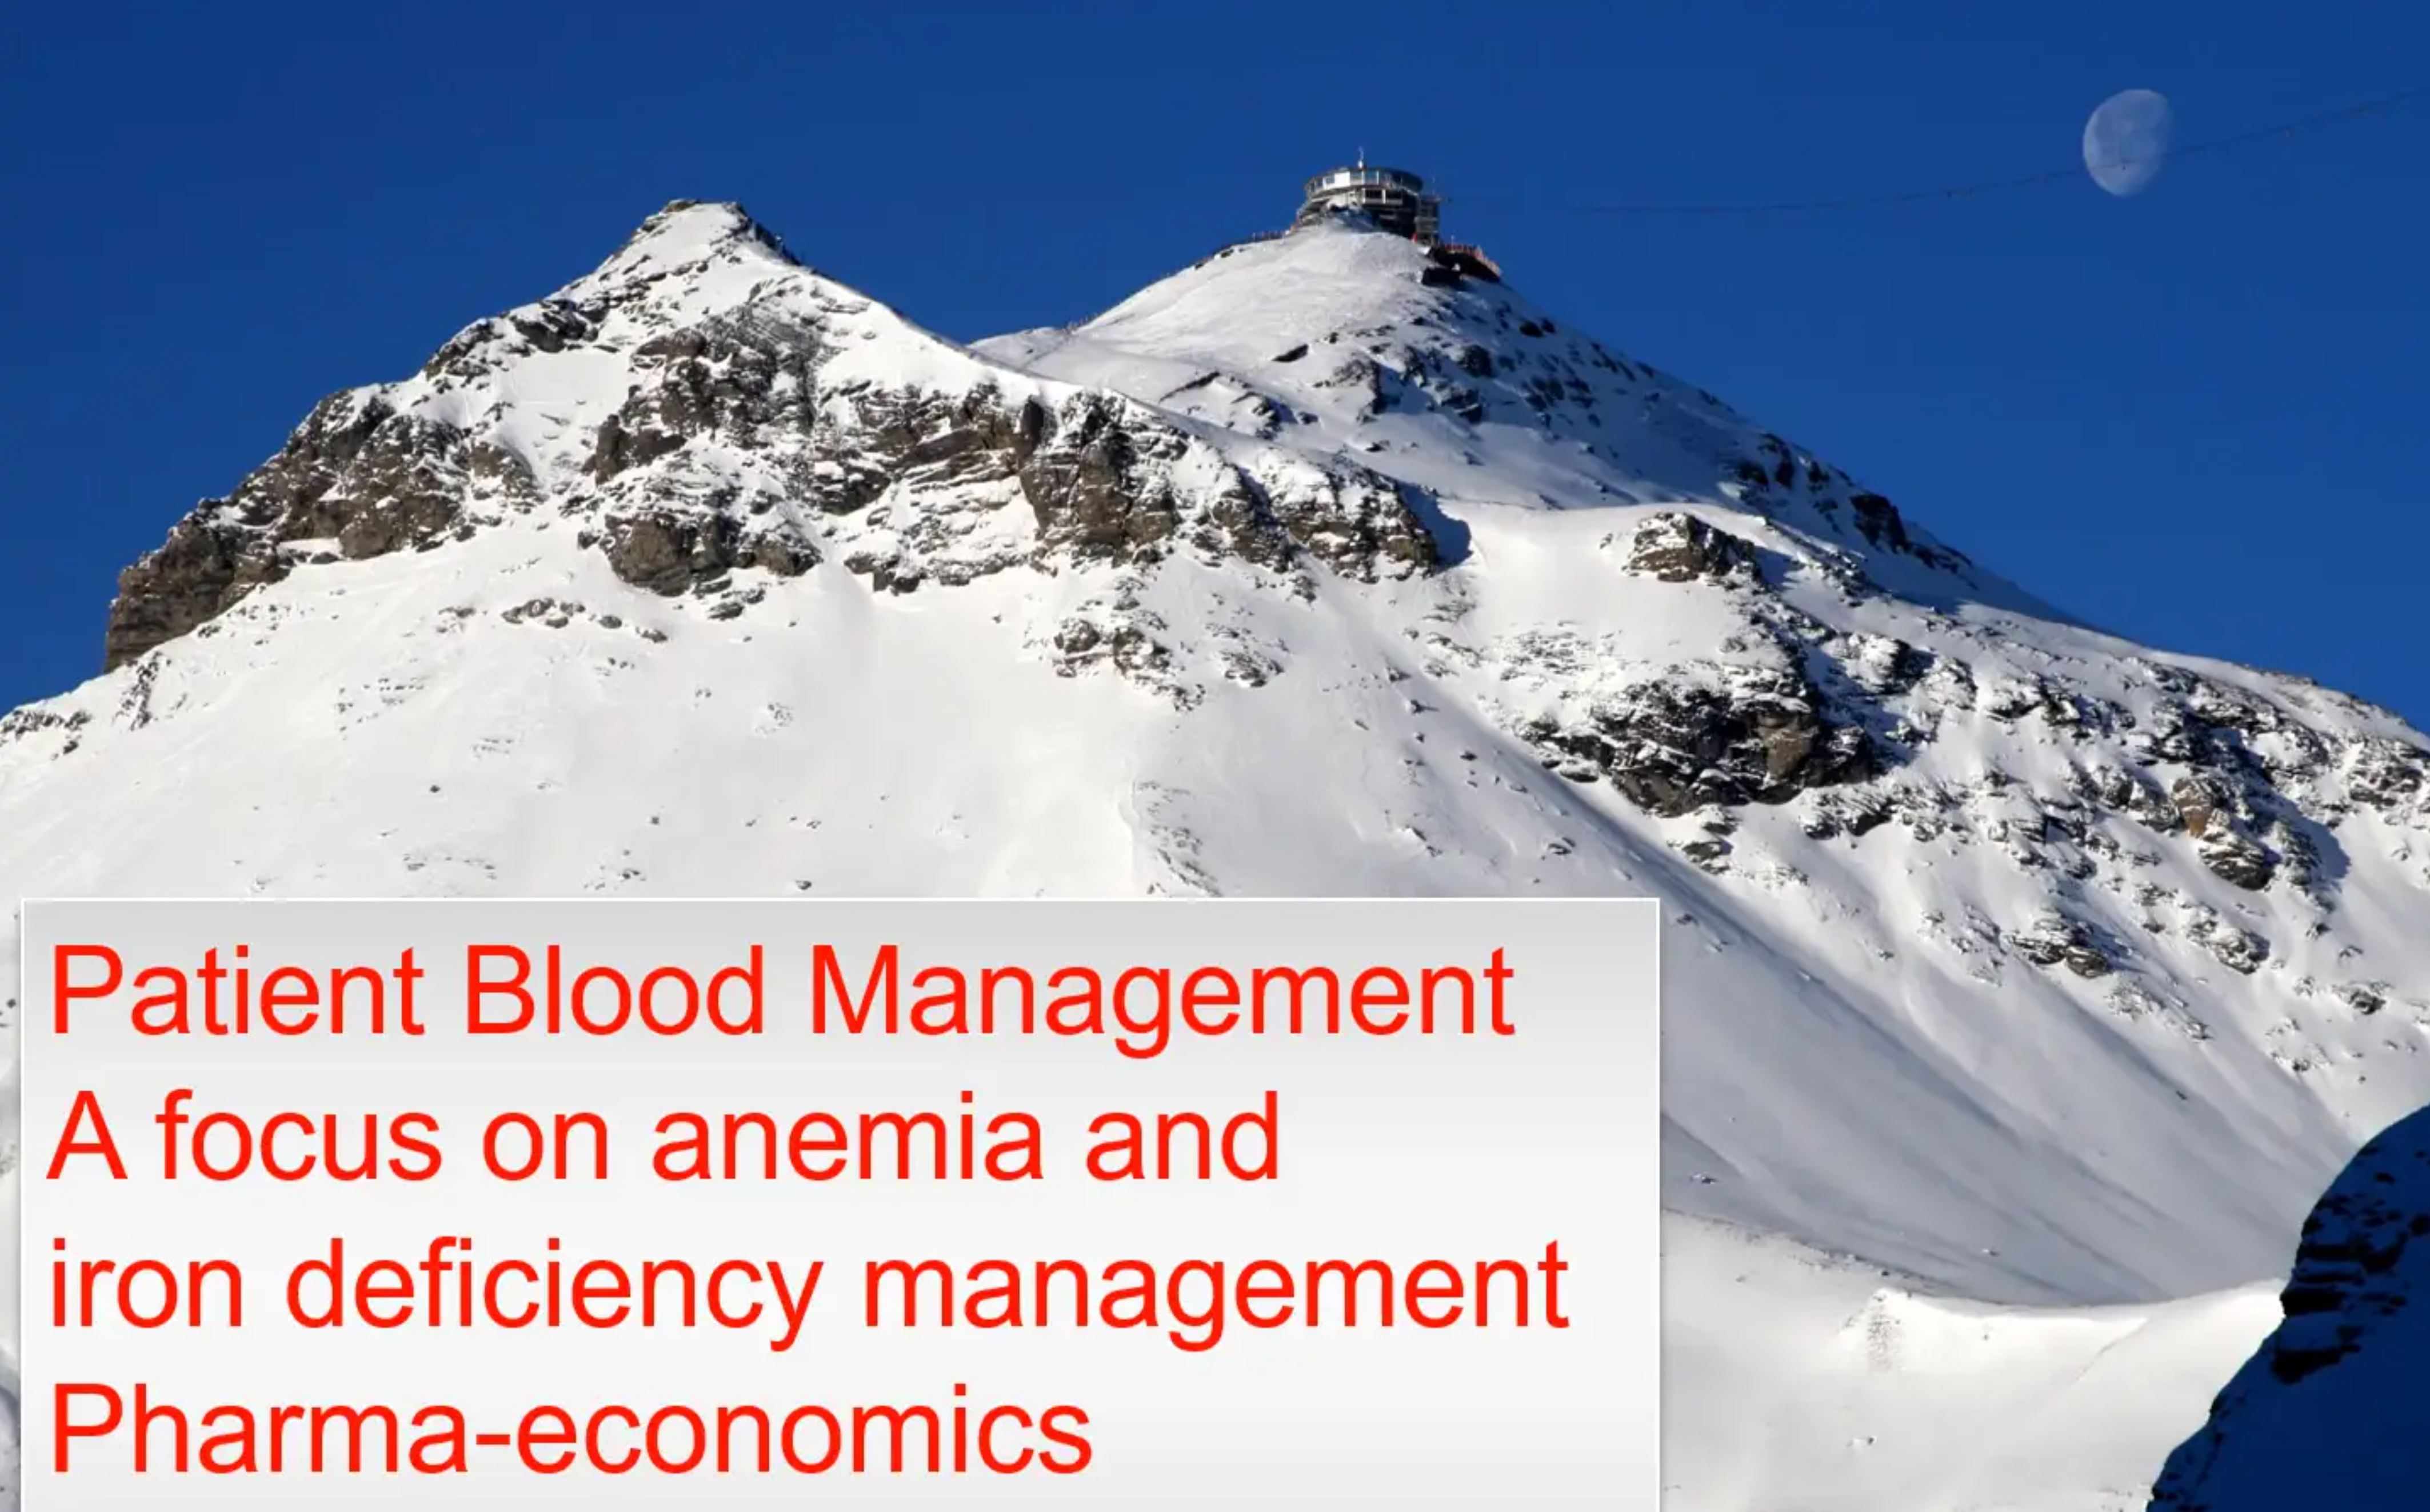 Patient Blood Management - A Focus on Anemia and Iron Deficiency Mgmt Pharma-economics